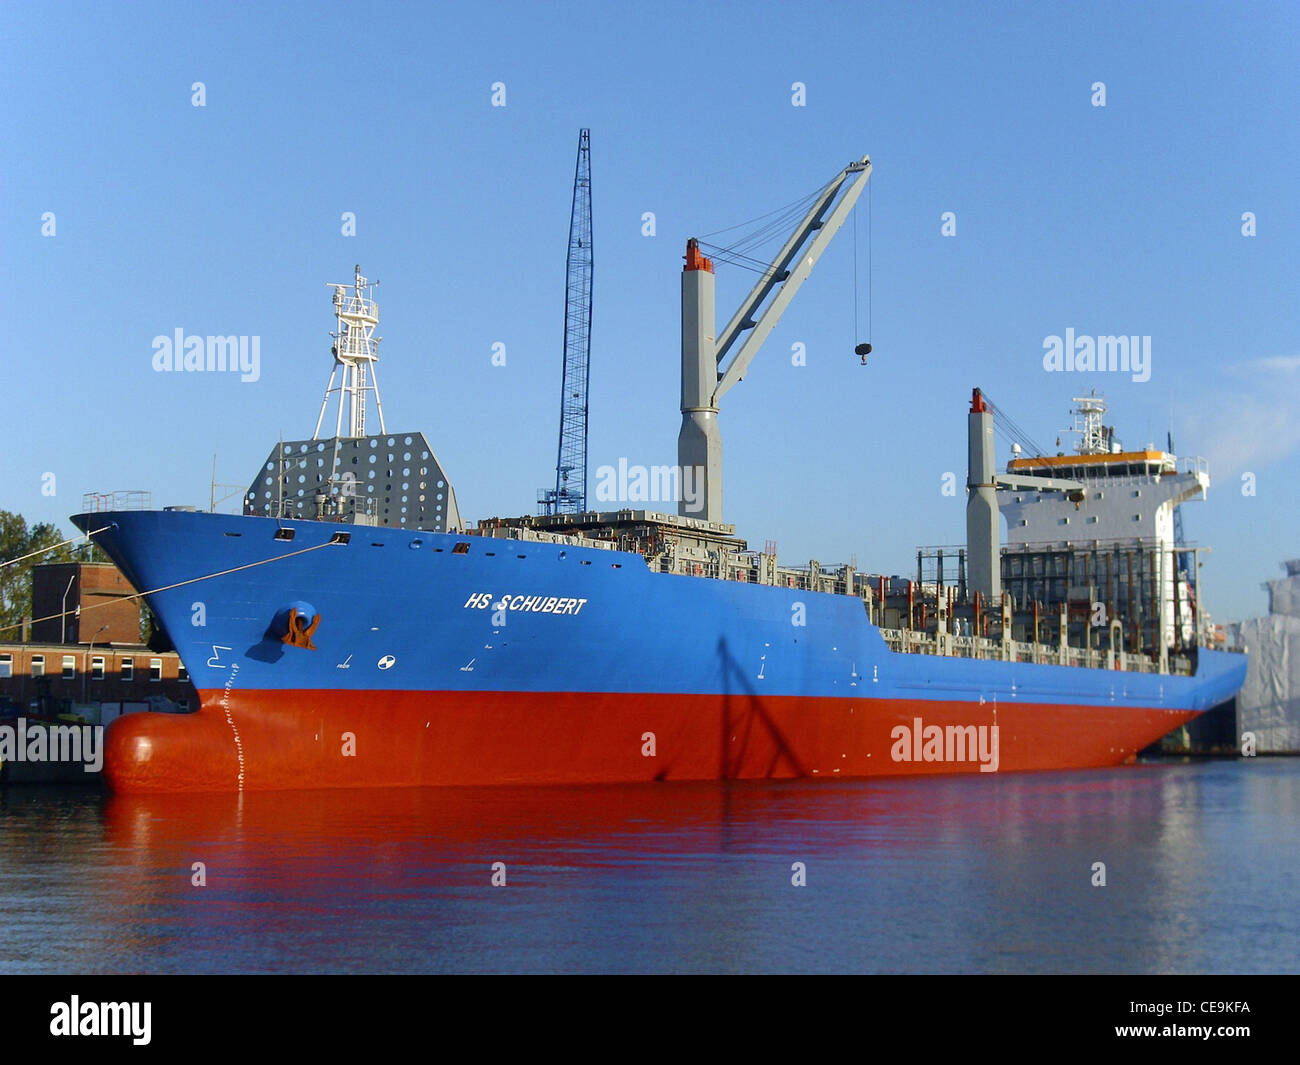 container ship HS Schubert - Stock Image